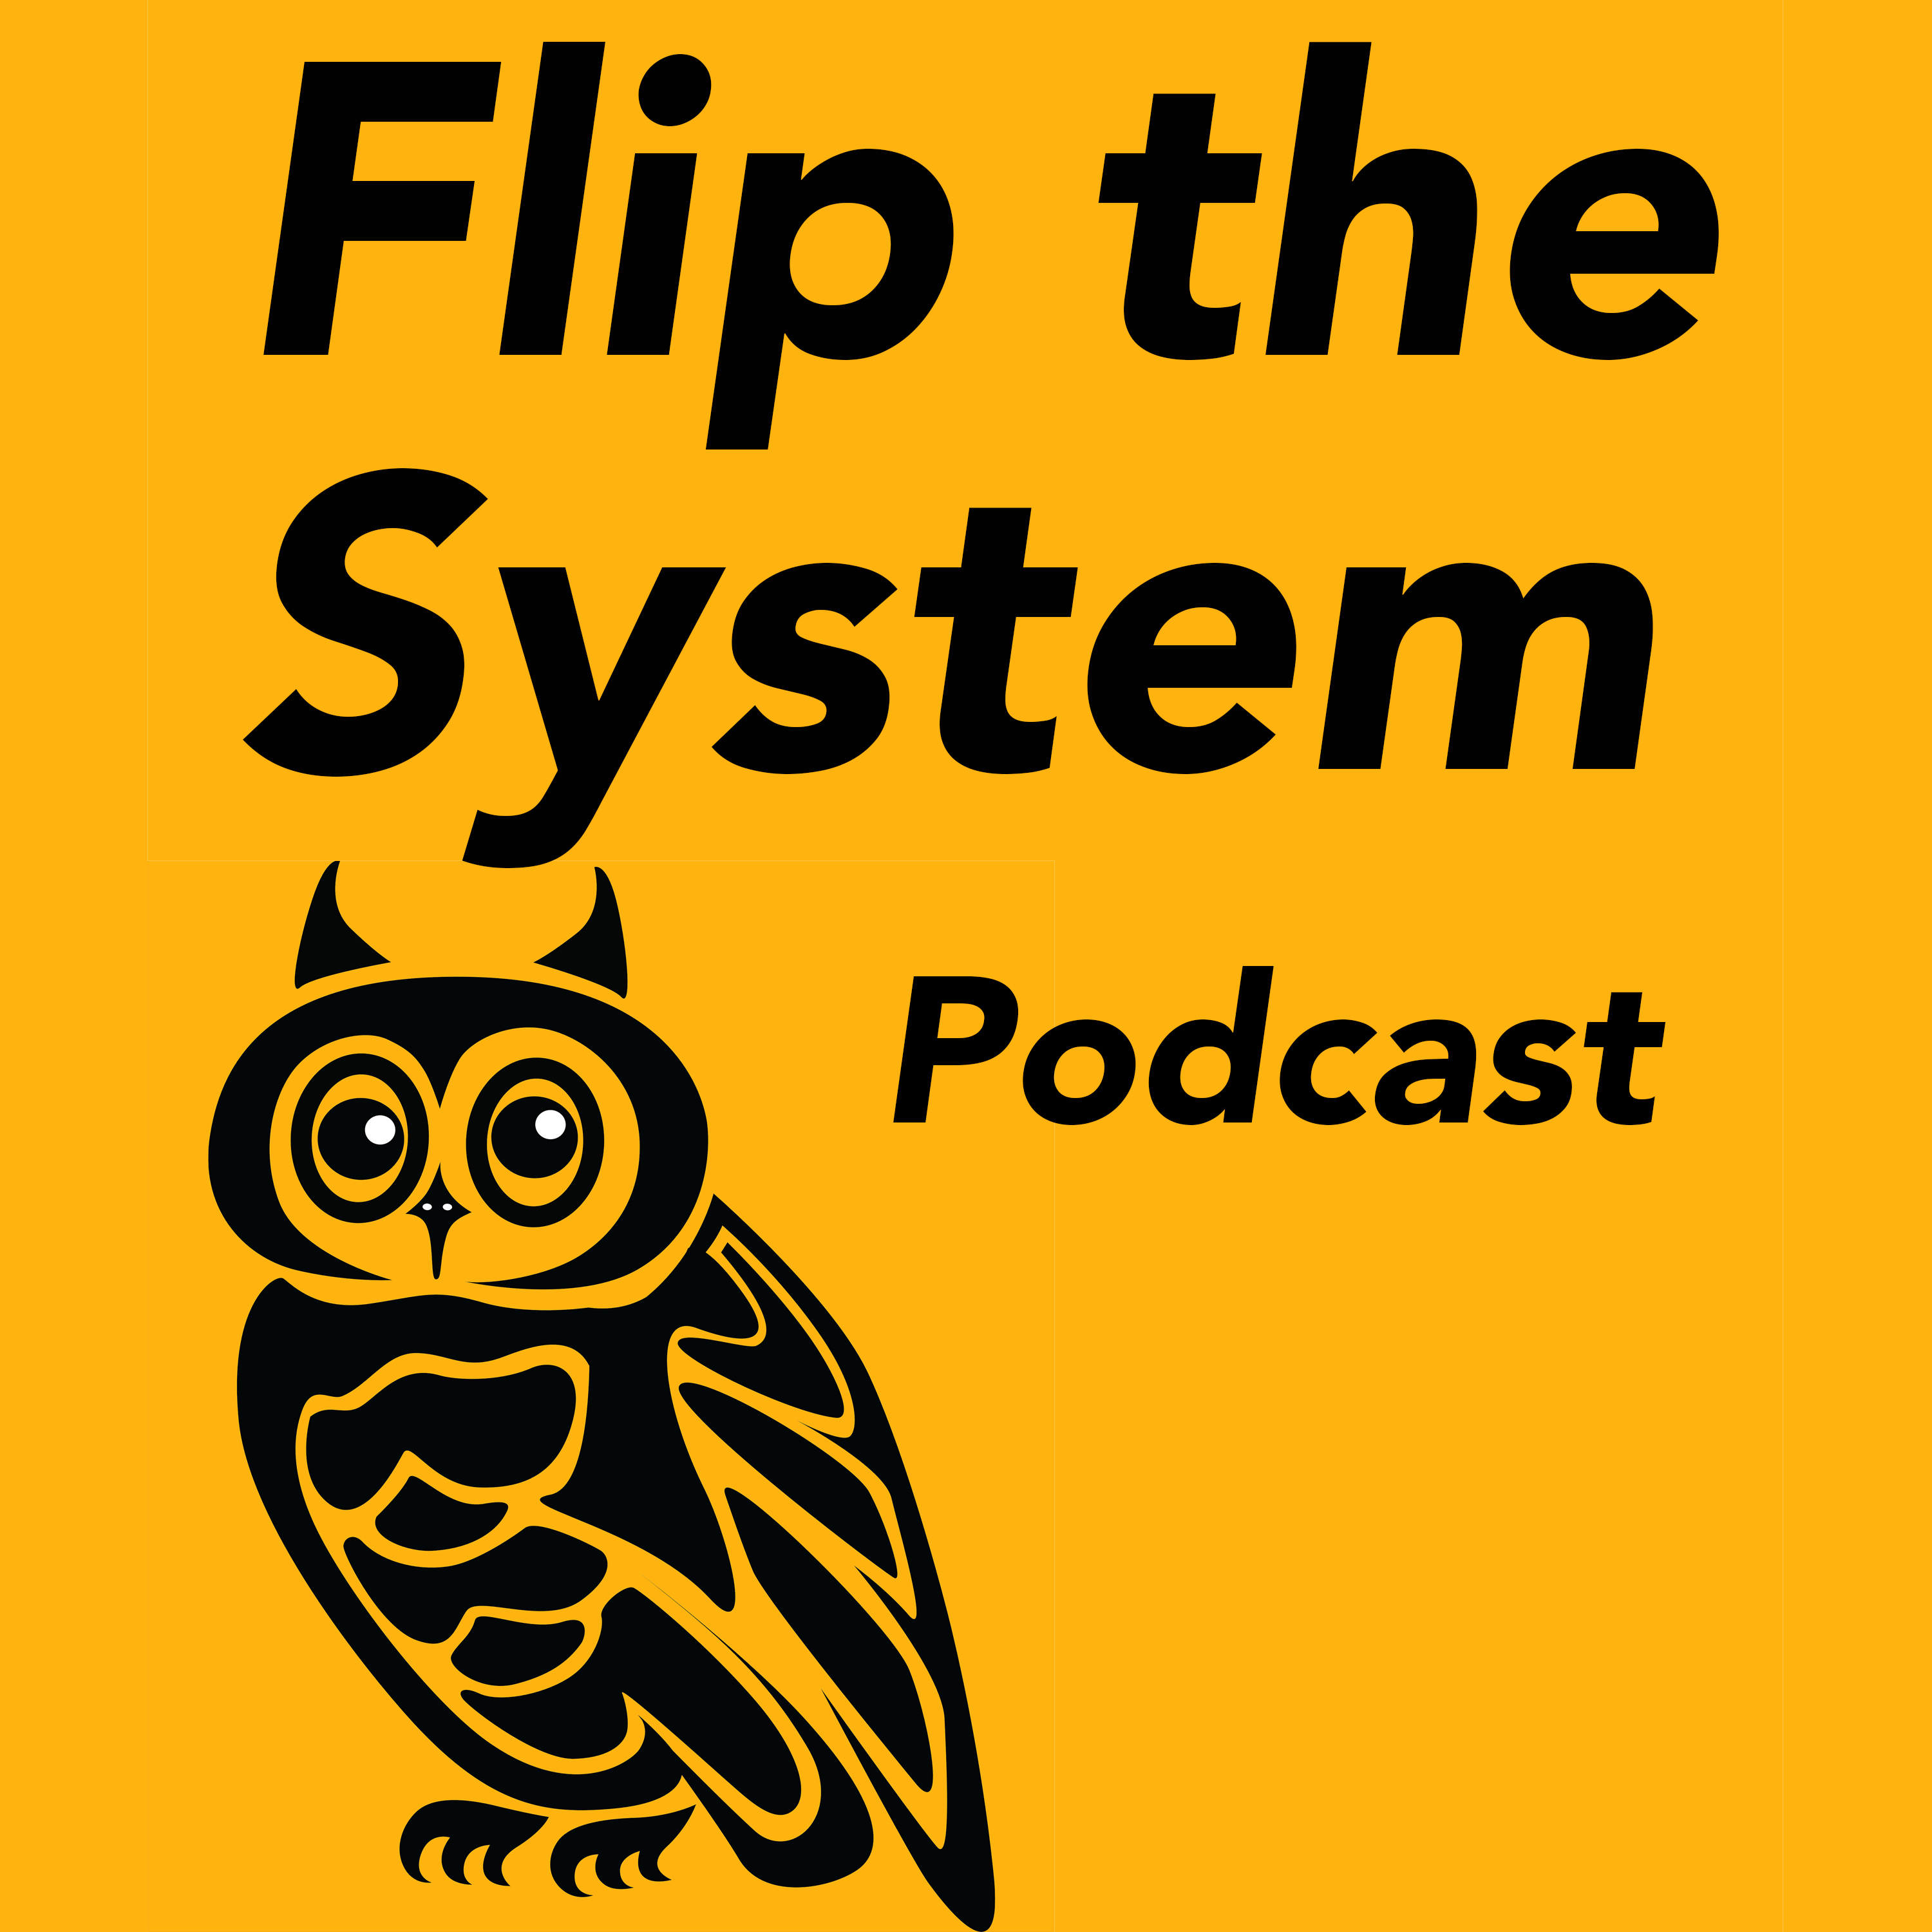 Flip the System Podcast show art